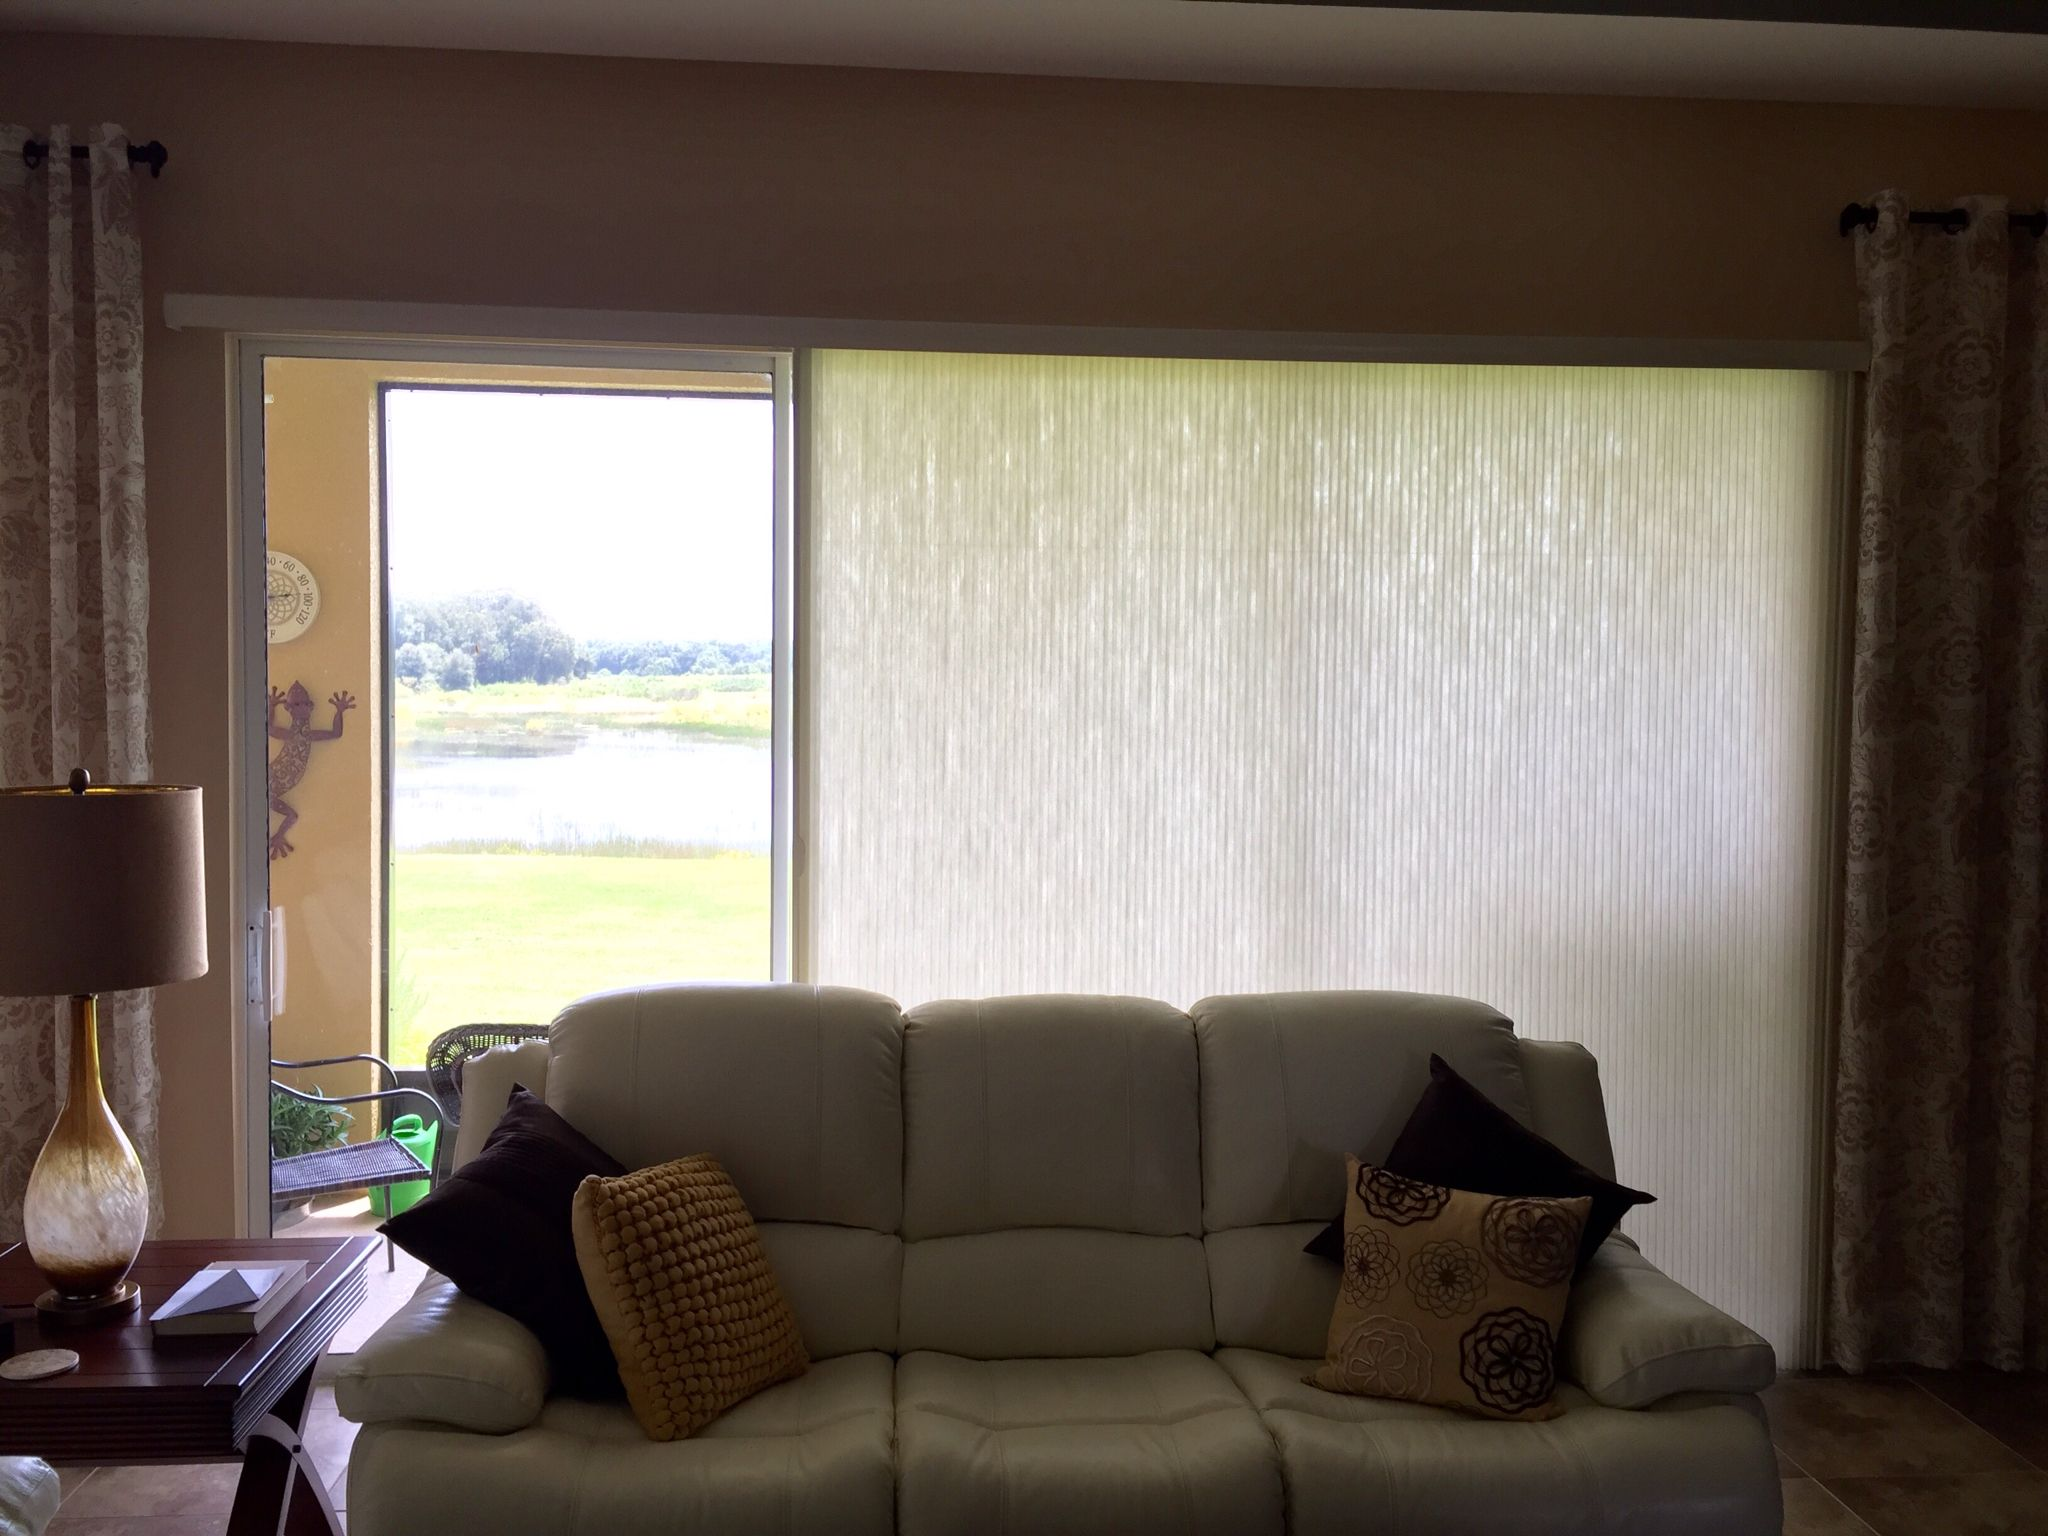 Vertical Cell Shade By Enlightened Style Available At Budget Blinds Of Clermont Custom Window Treatments Cell Shade Cordless Blinds